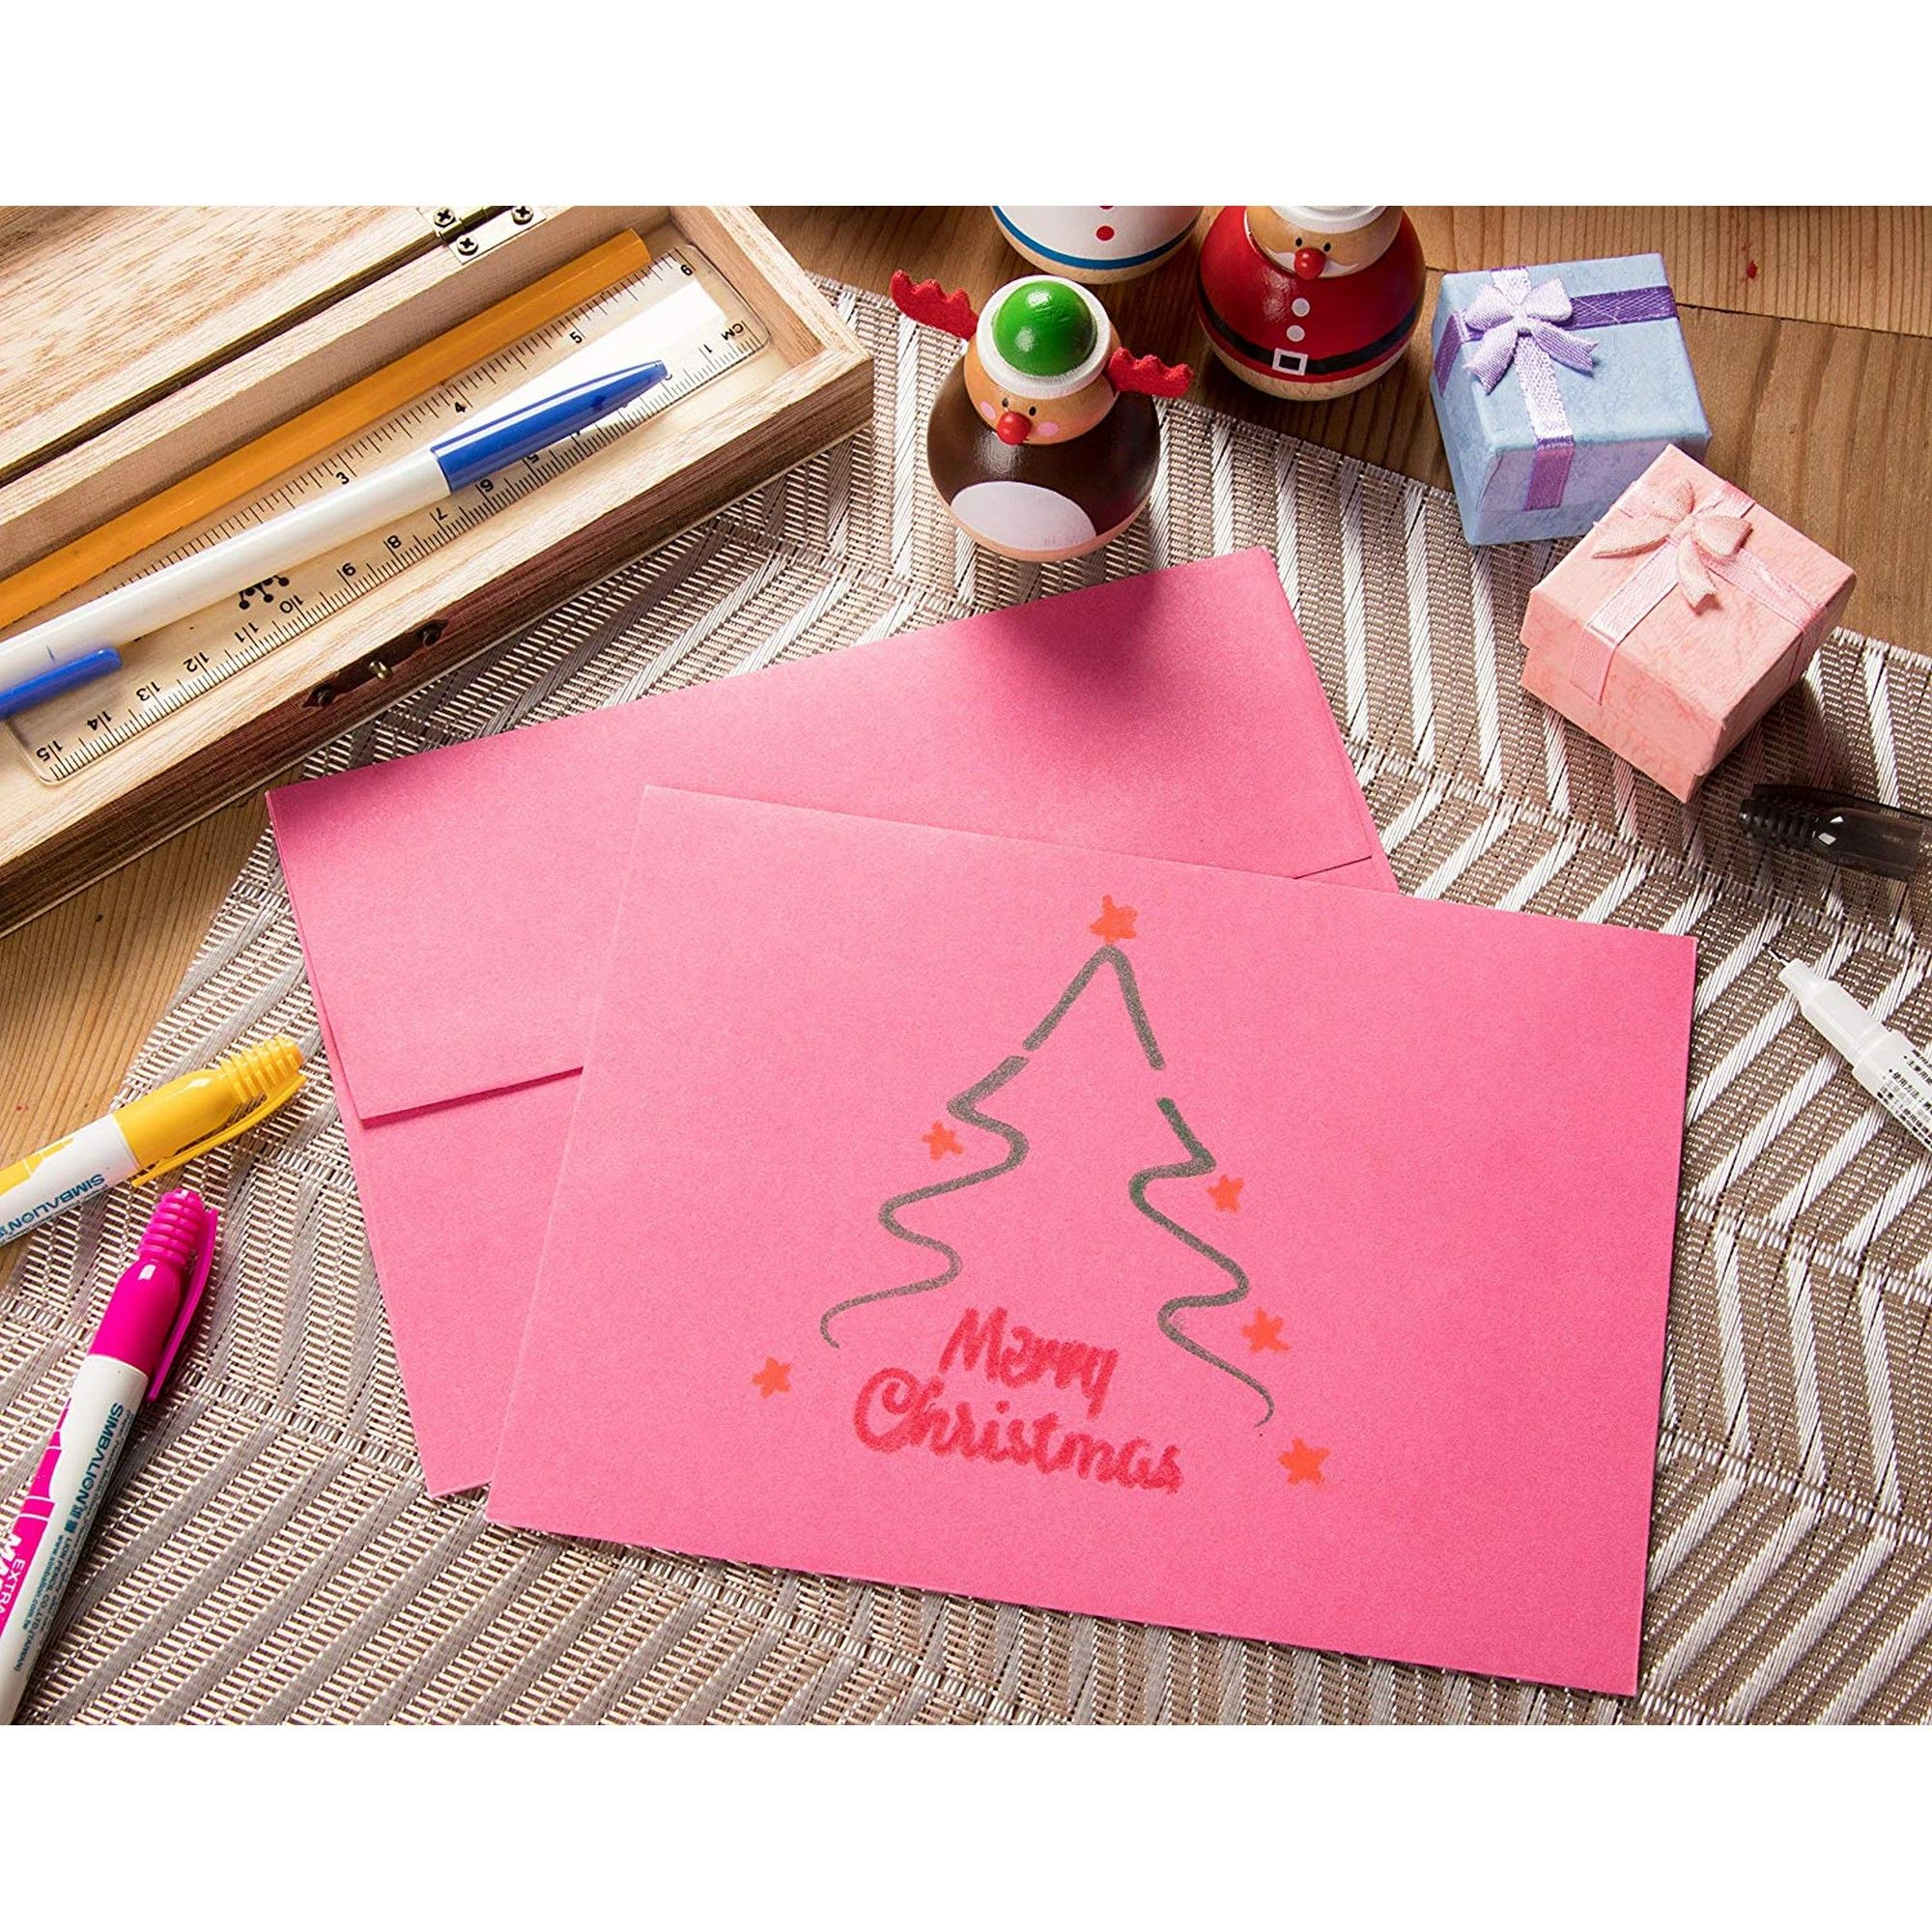 Holiday 5 x 7 Gummed Seal Square-Flap Invite Envelope for Wedding 5.25 x 7.25 inches 120gsm Birthday Purple Baby Shower 100-Pack Invitation Envelopes A7 Envelopes